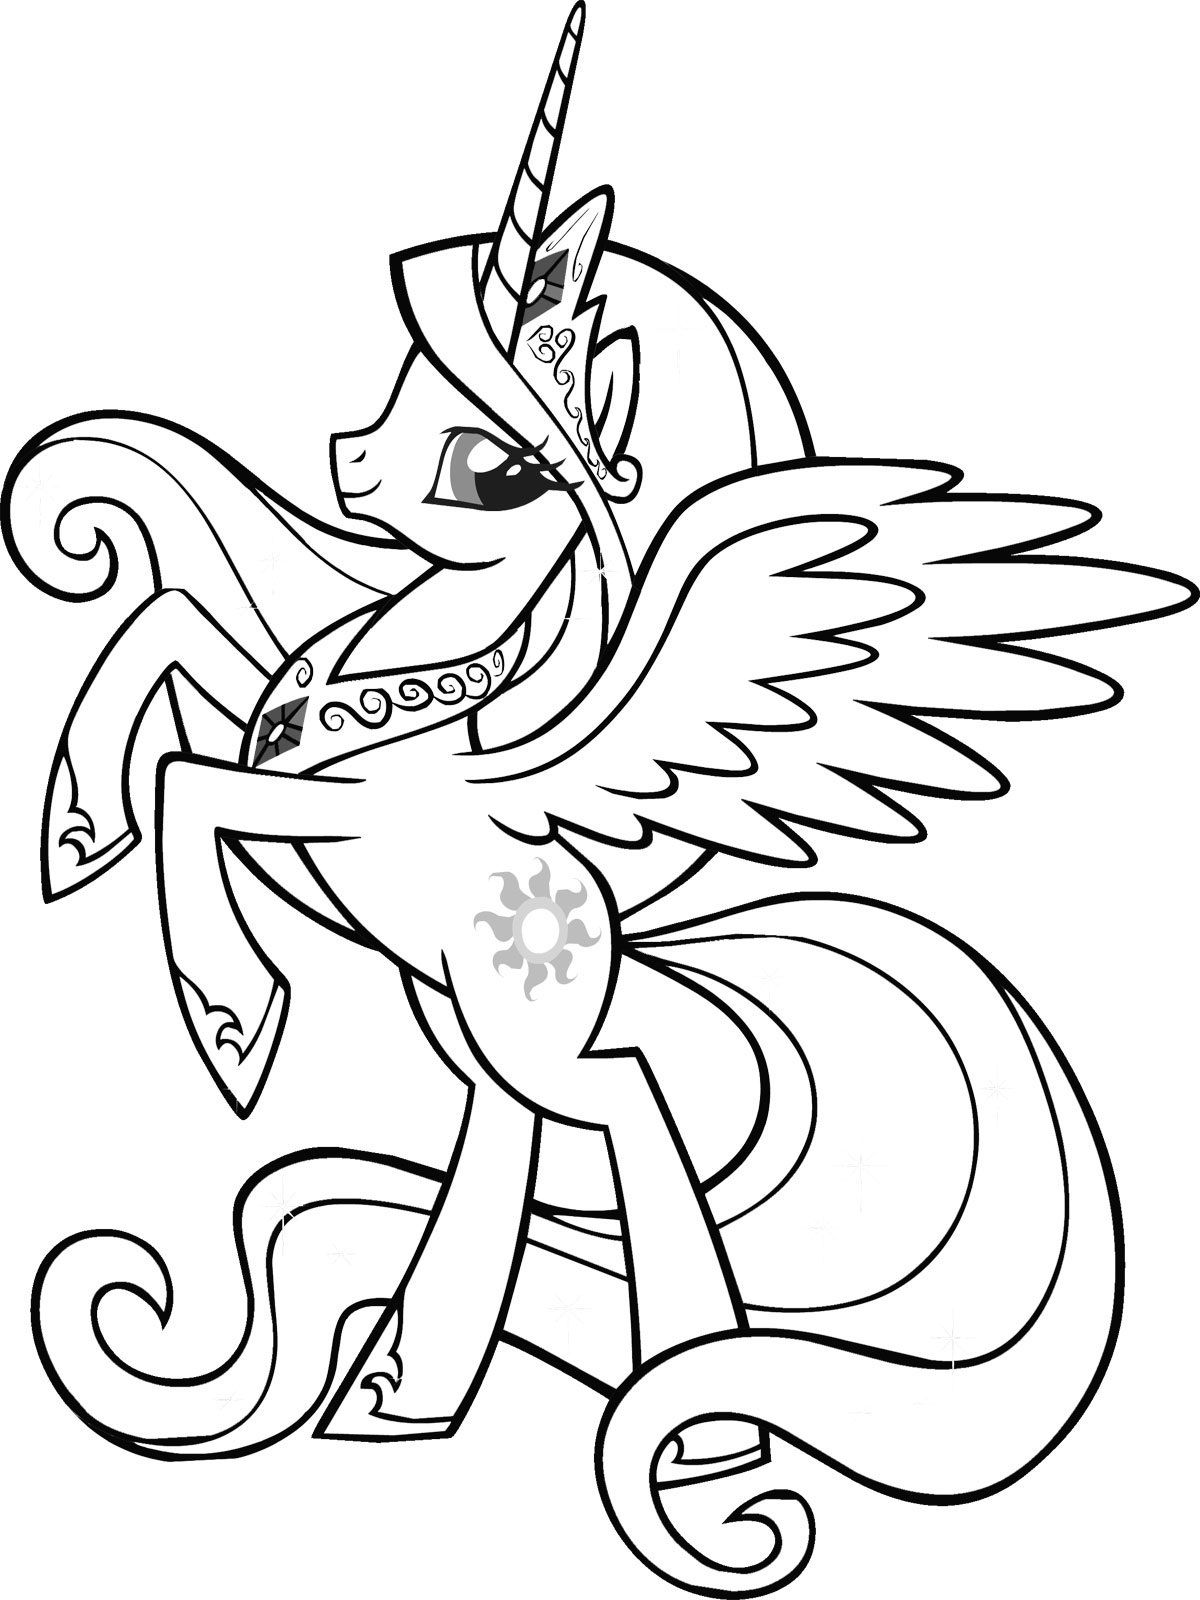 My Little Pony Ausmalbilder Prinzessin Luna : Rarity Drawing 2 Gla Disegno 2 T Rarity Mlp And Pony